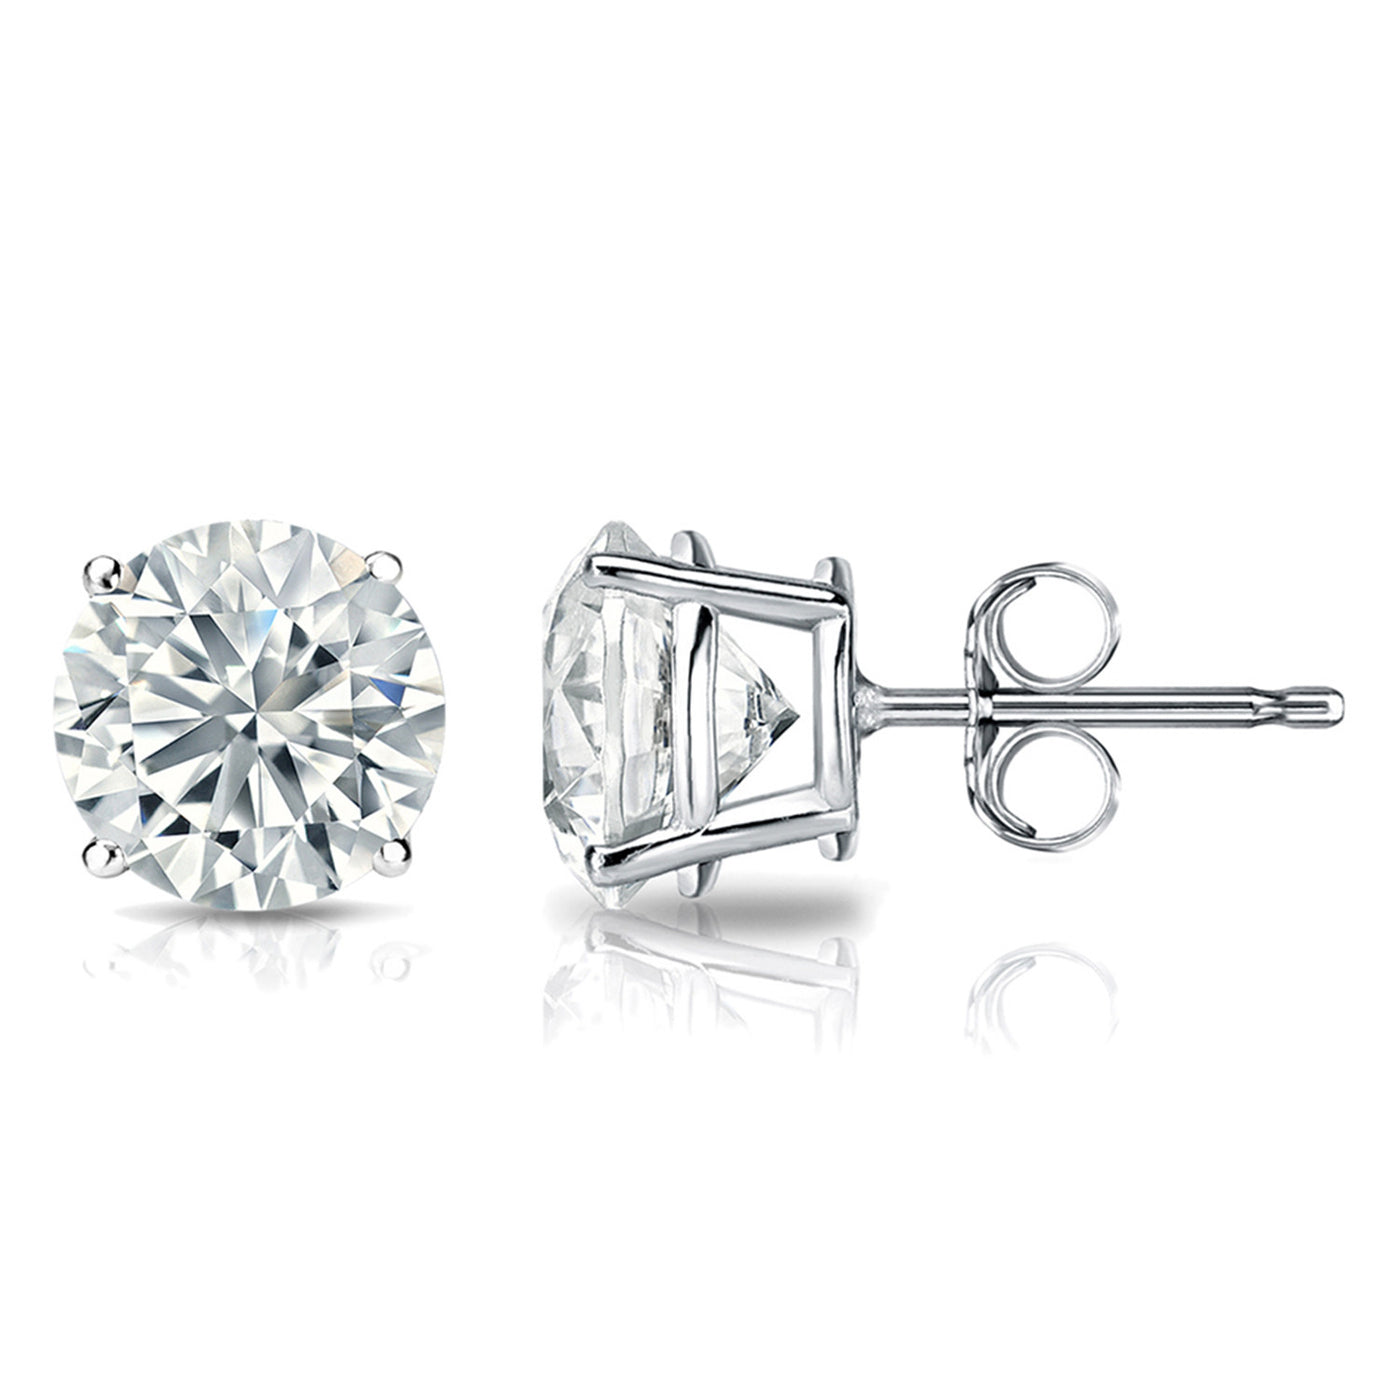 1 Carat Round 14k White Gold 4 Prong Basket Set Diamond Solitaire Stud Earrings (Signature Quality)